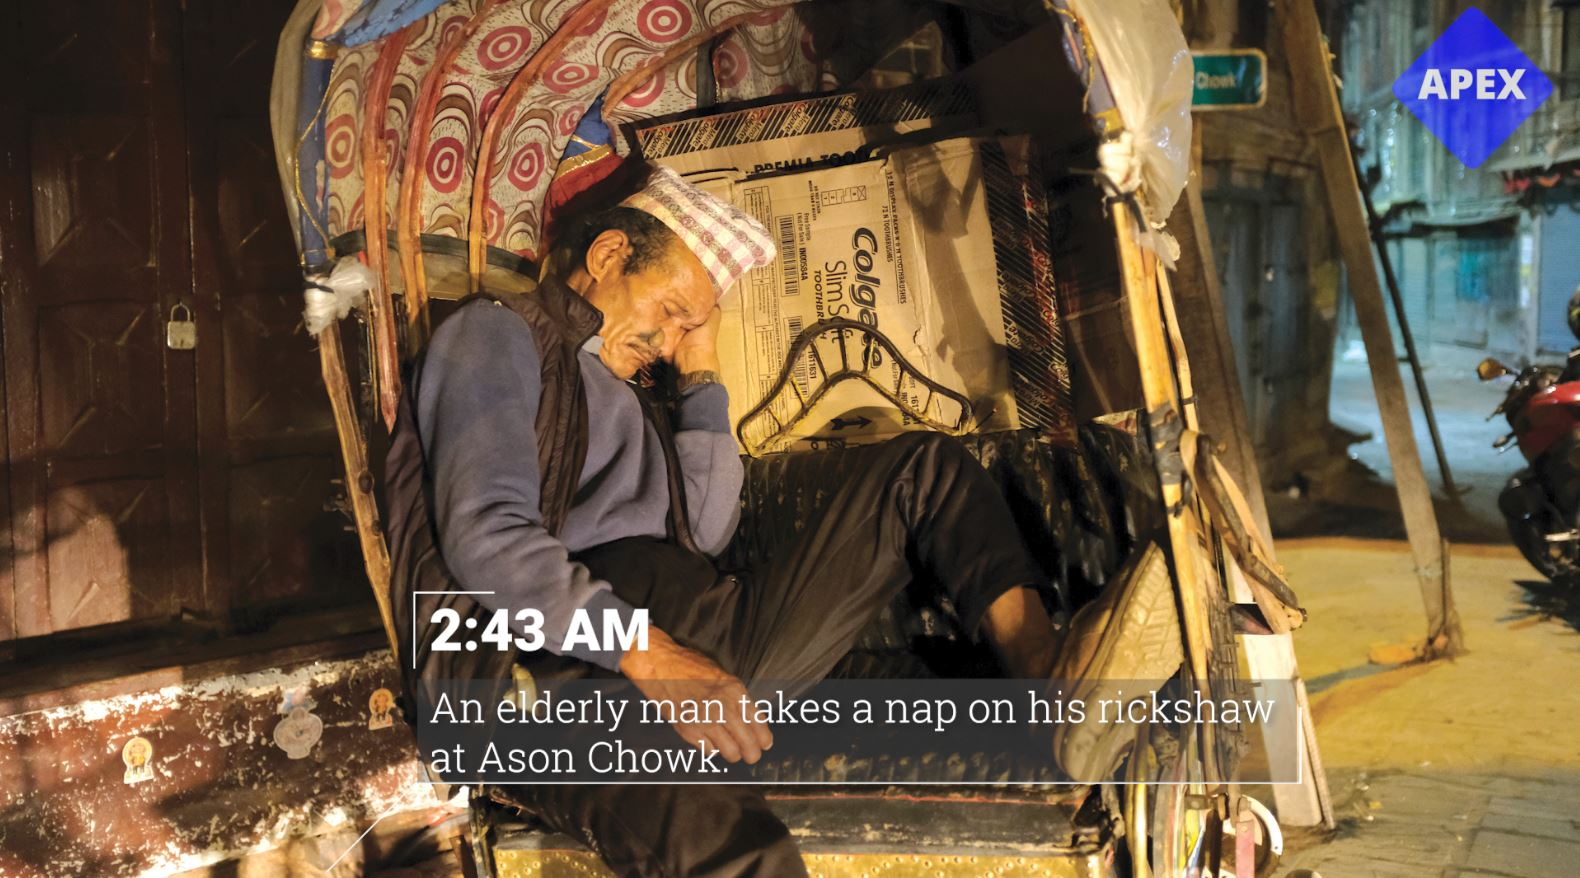 An elderly man takes a nap on his rickshaw at Ason Chowk. (2:43 am)